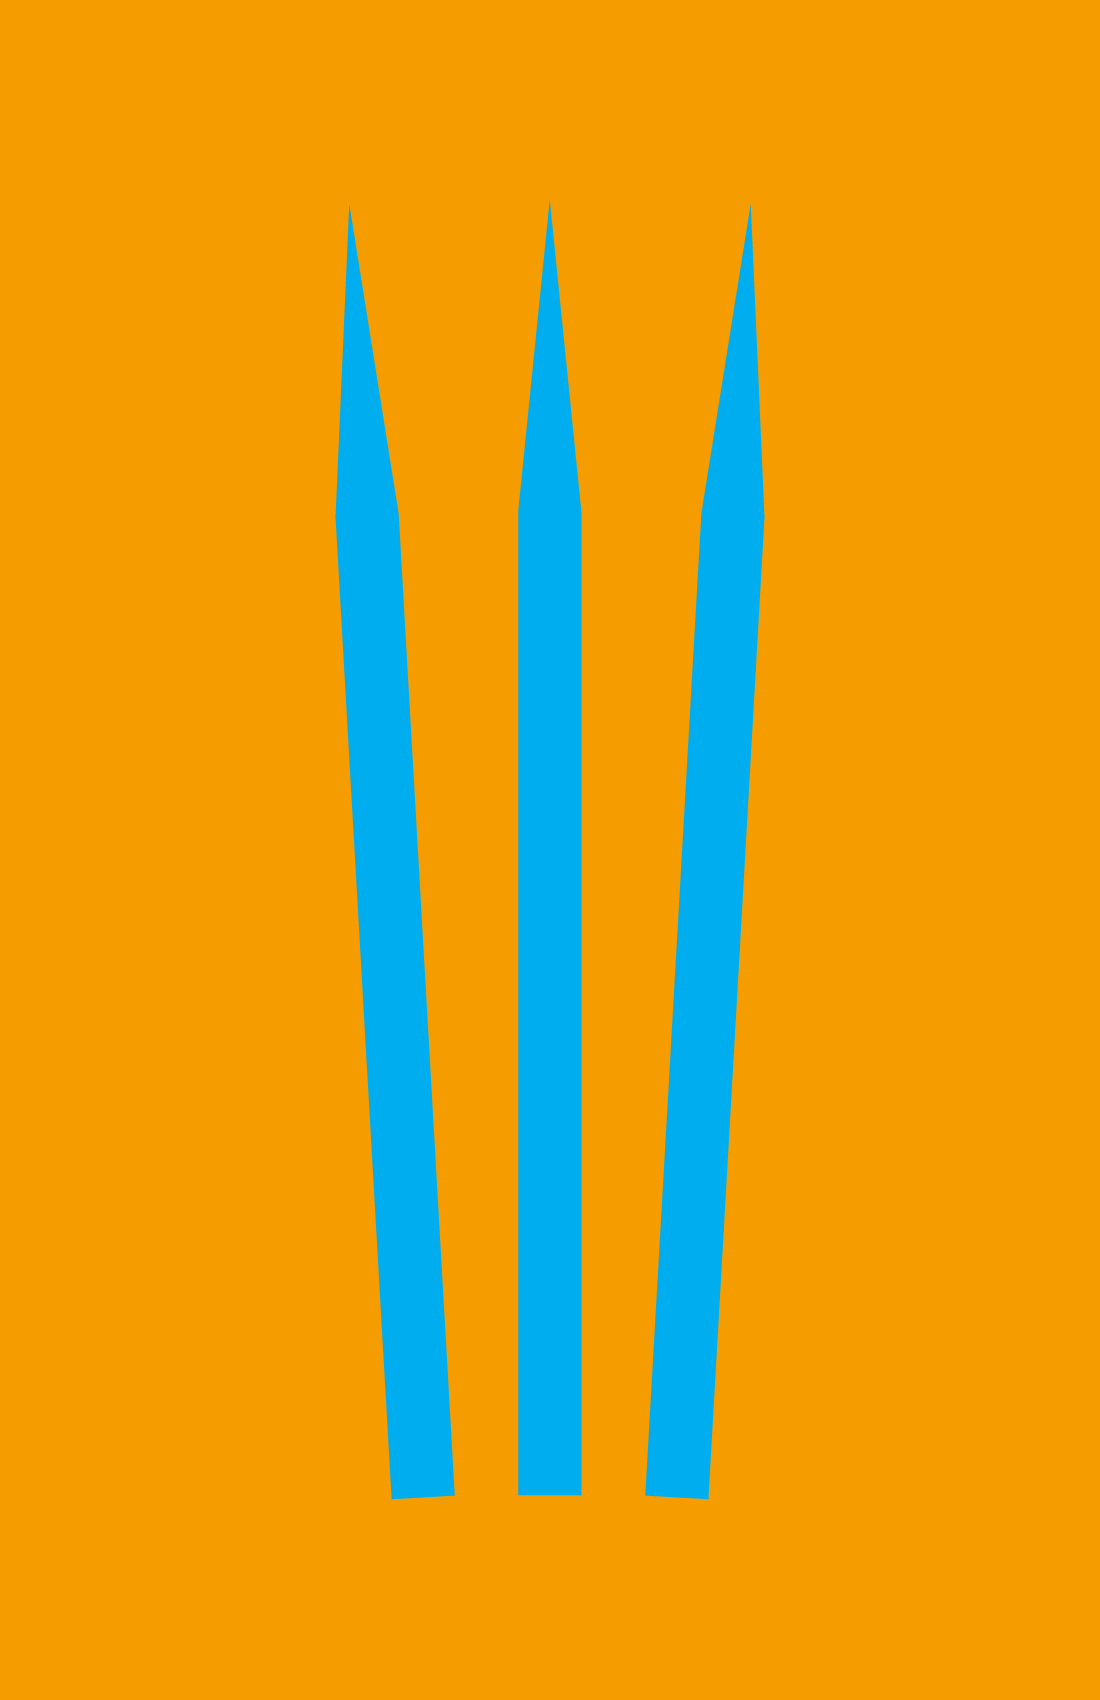 Wolverine minimalist weapon design by Minimalist Heroes.